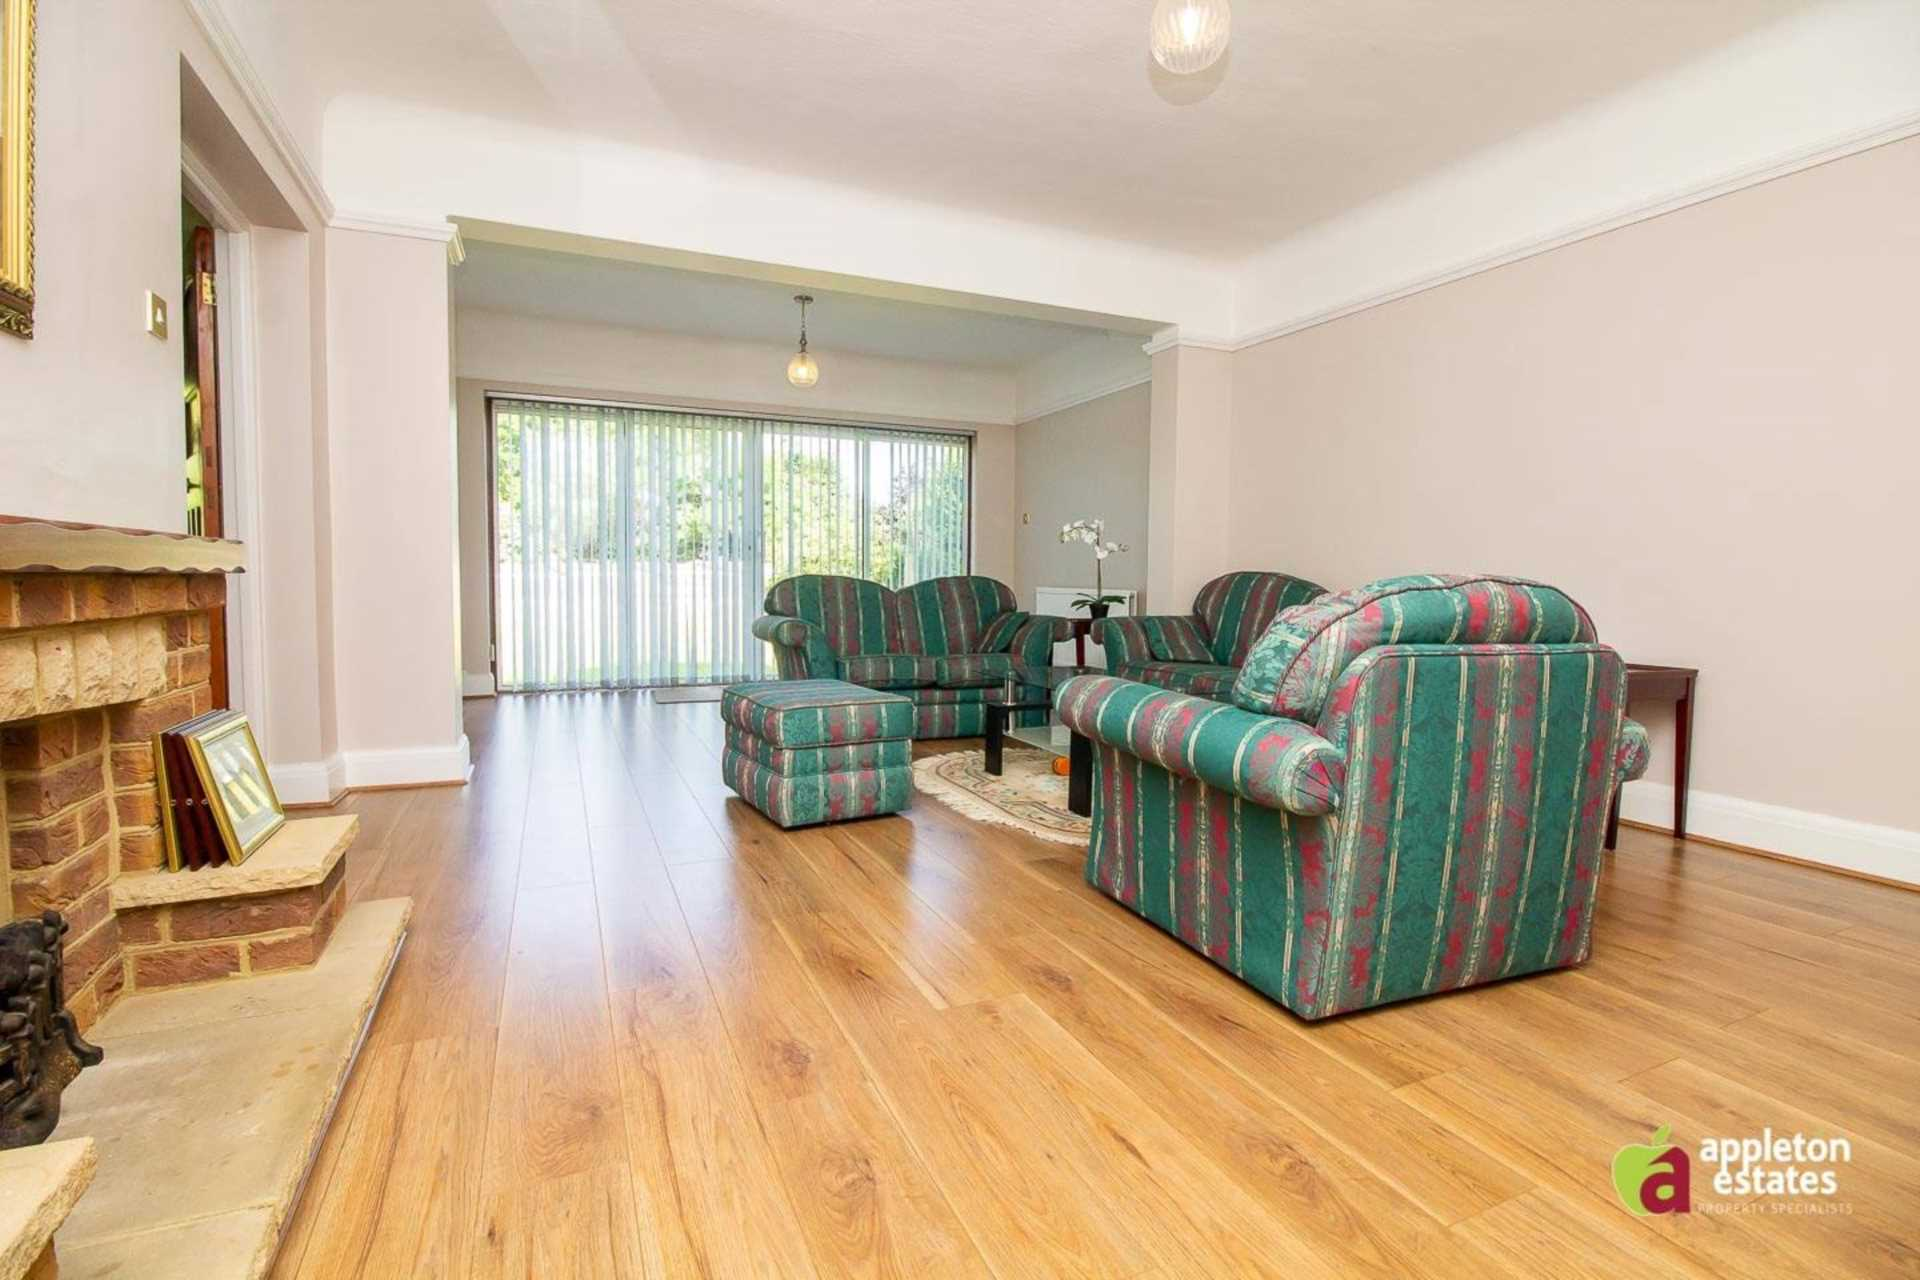 Rent In Purley L2L5590-1046